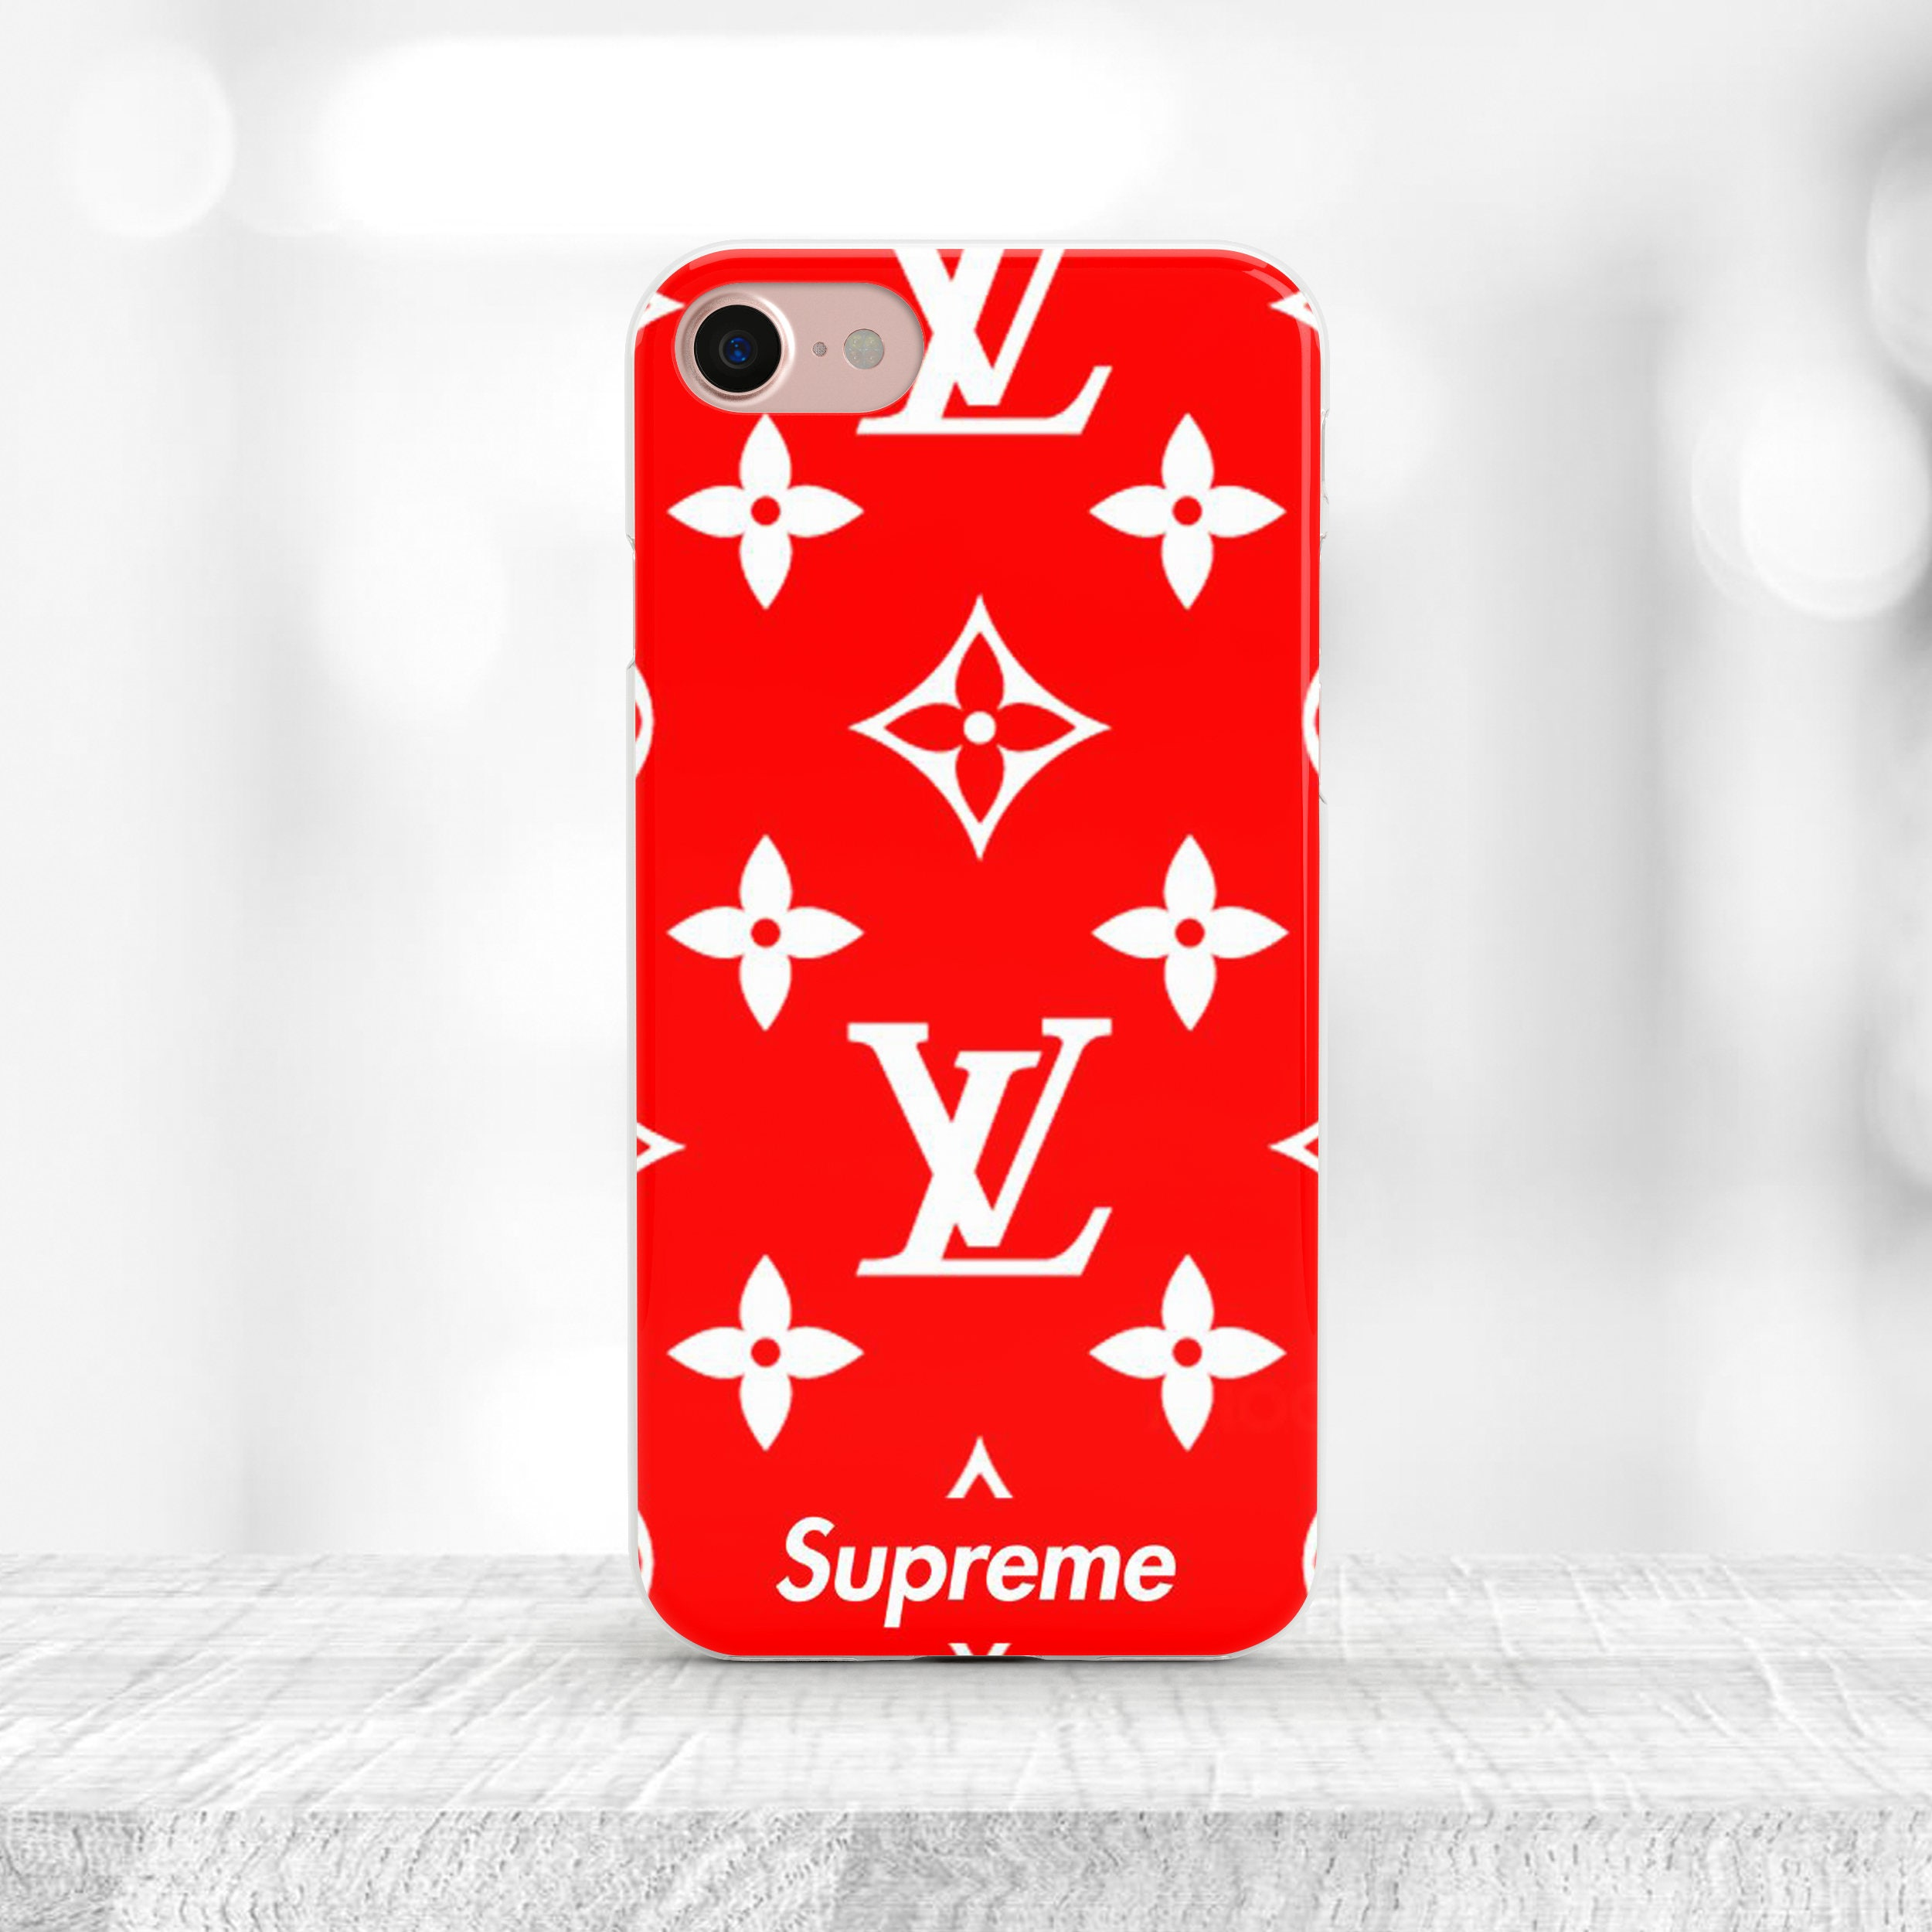 Iphone Case Louis Vuitton Supreme